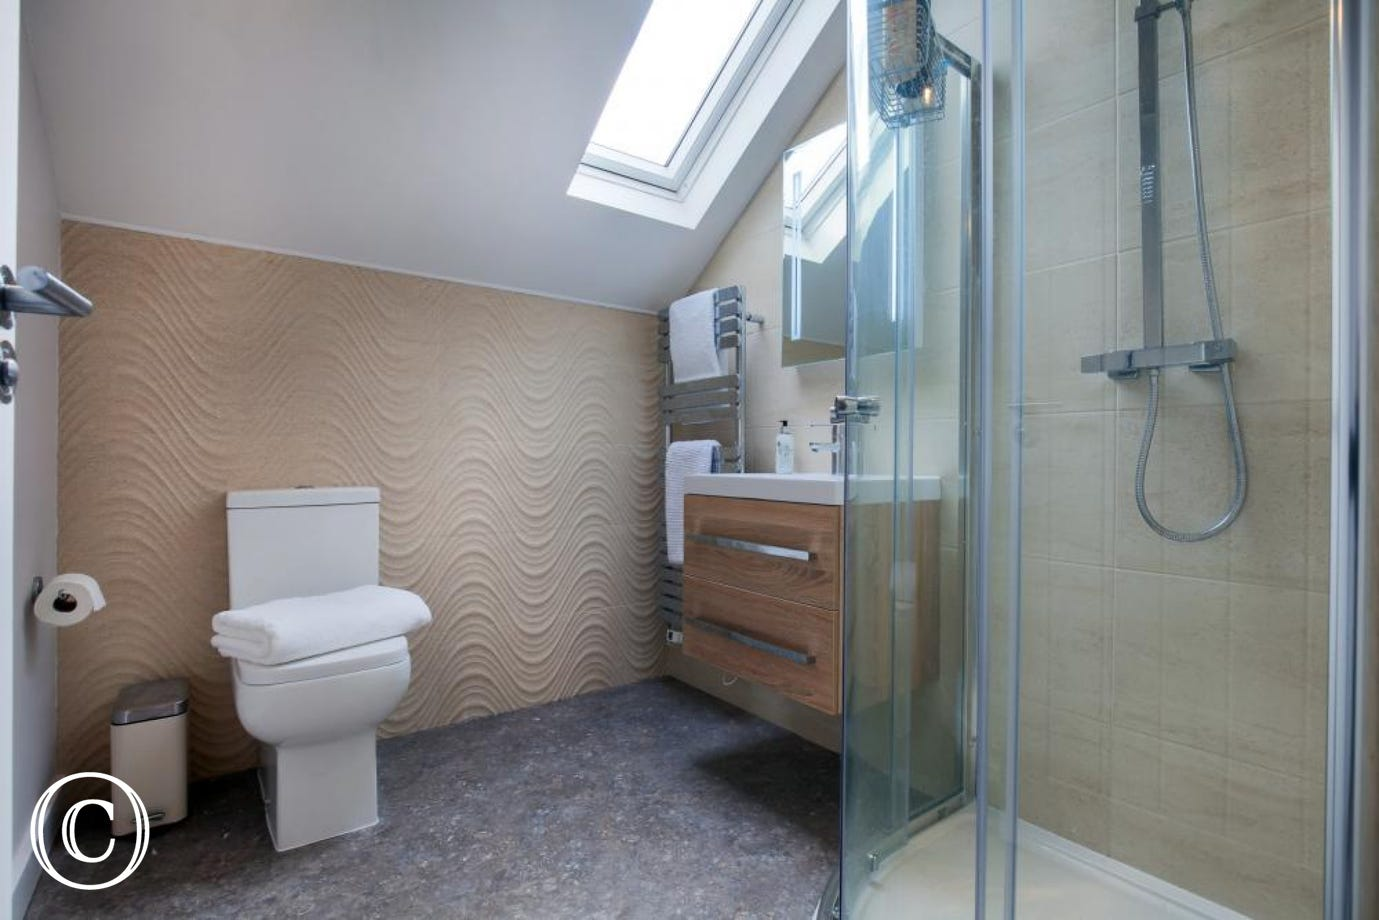 Upstairs master bedroom en-suite shower room